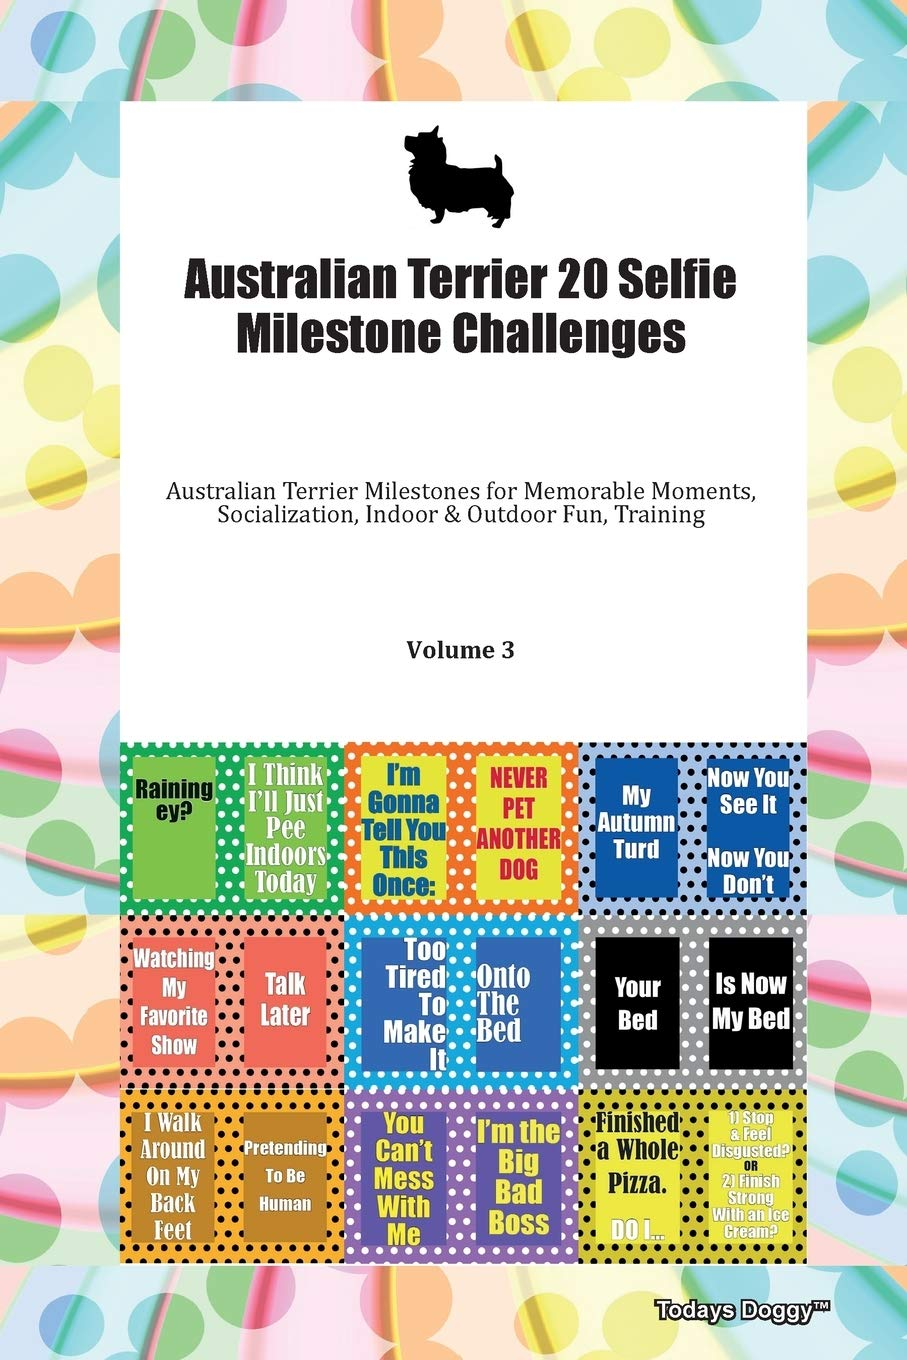 Australian Terrier 20 Selfie Milestone Challenges Australian Terrier Milestones for Memorable Moments, Socialization…